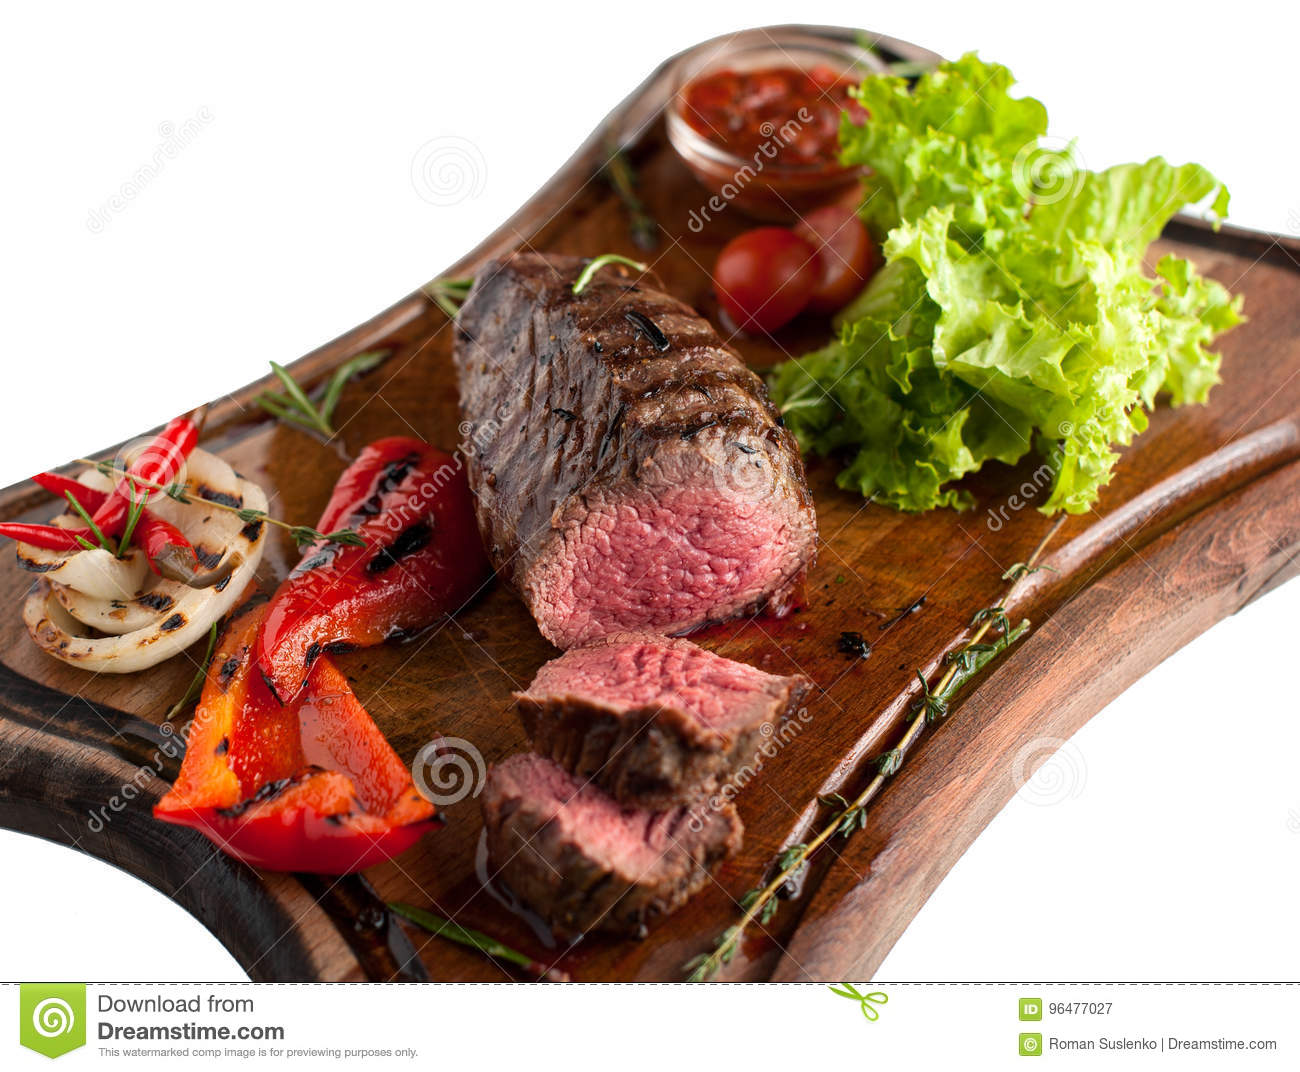 Juicy steak fillet mignon made from marbled beef with baked vegetables on a  wooden board. Sliced. Isolated abb1c23d18c9